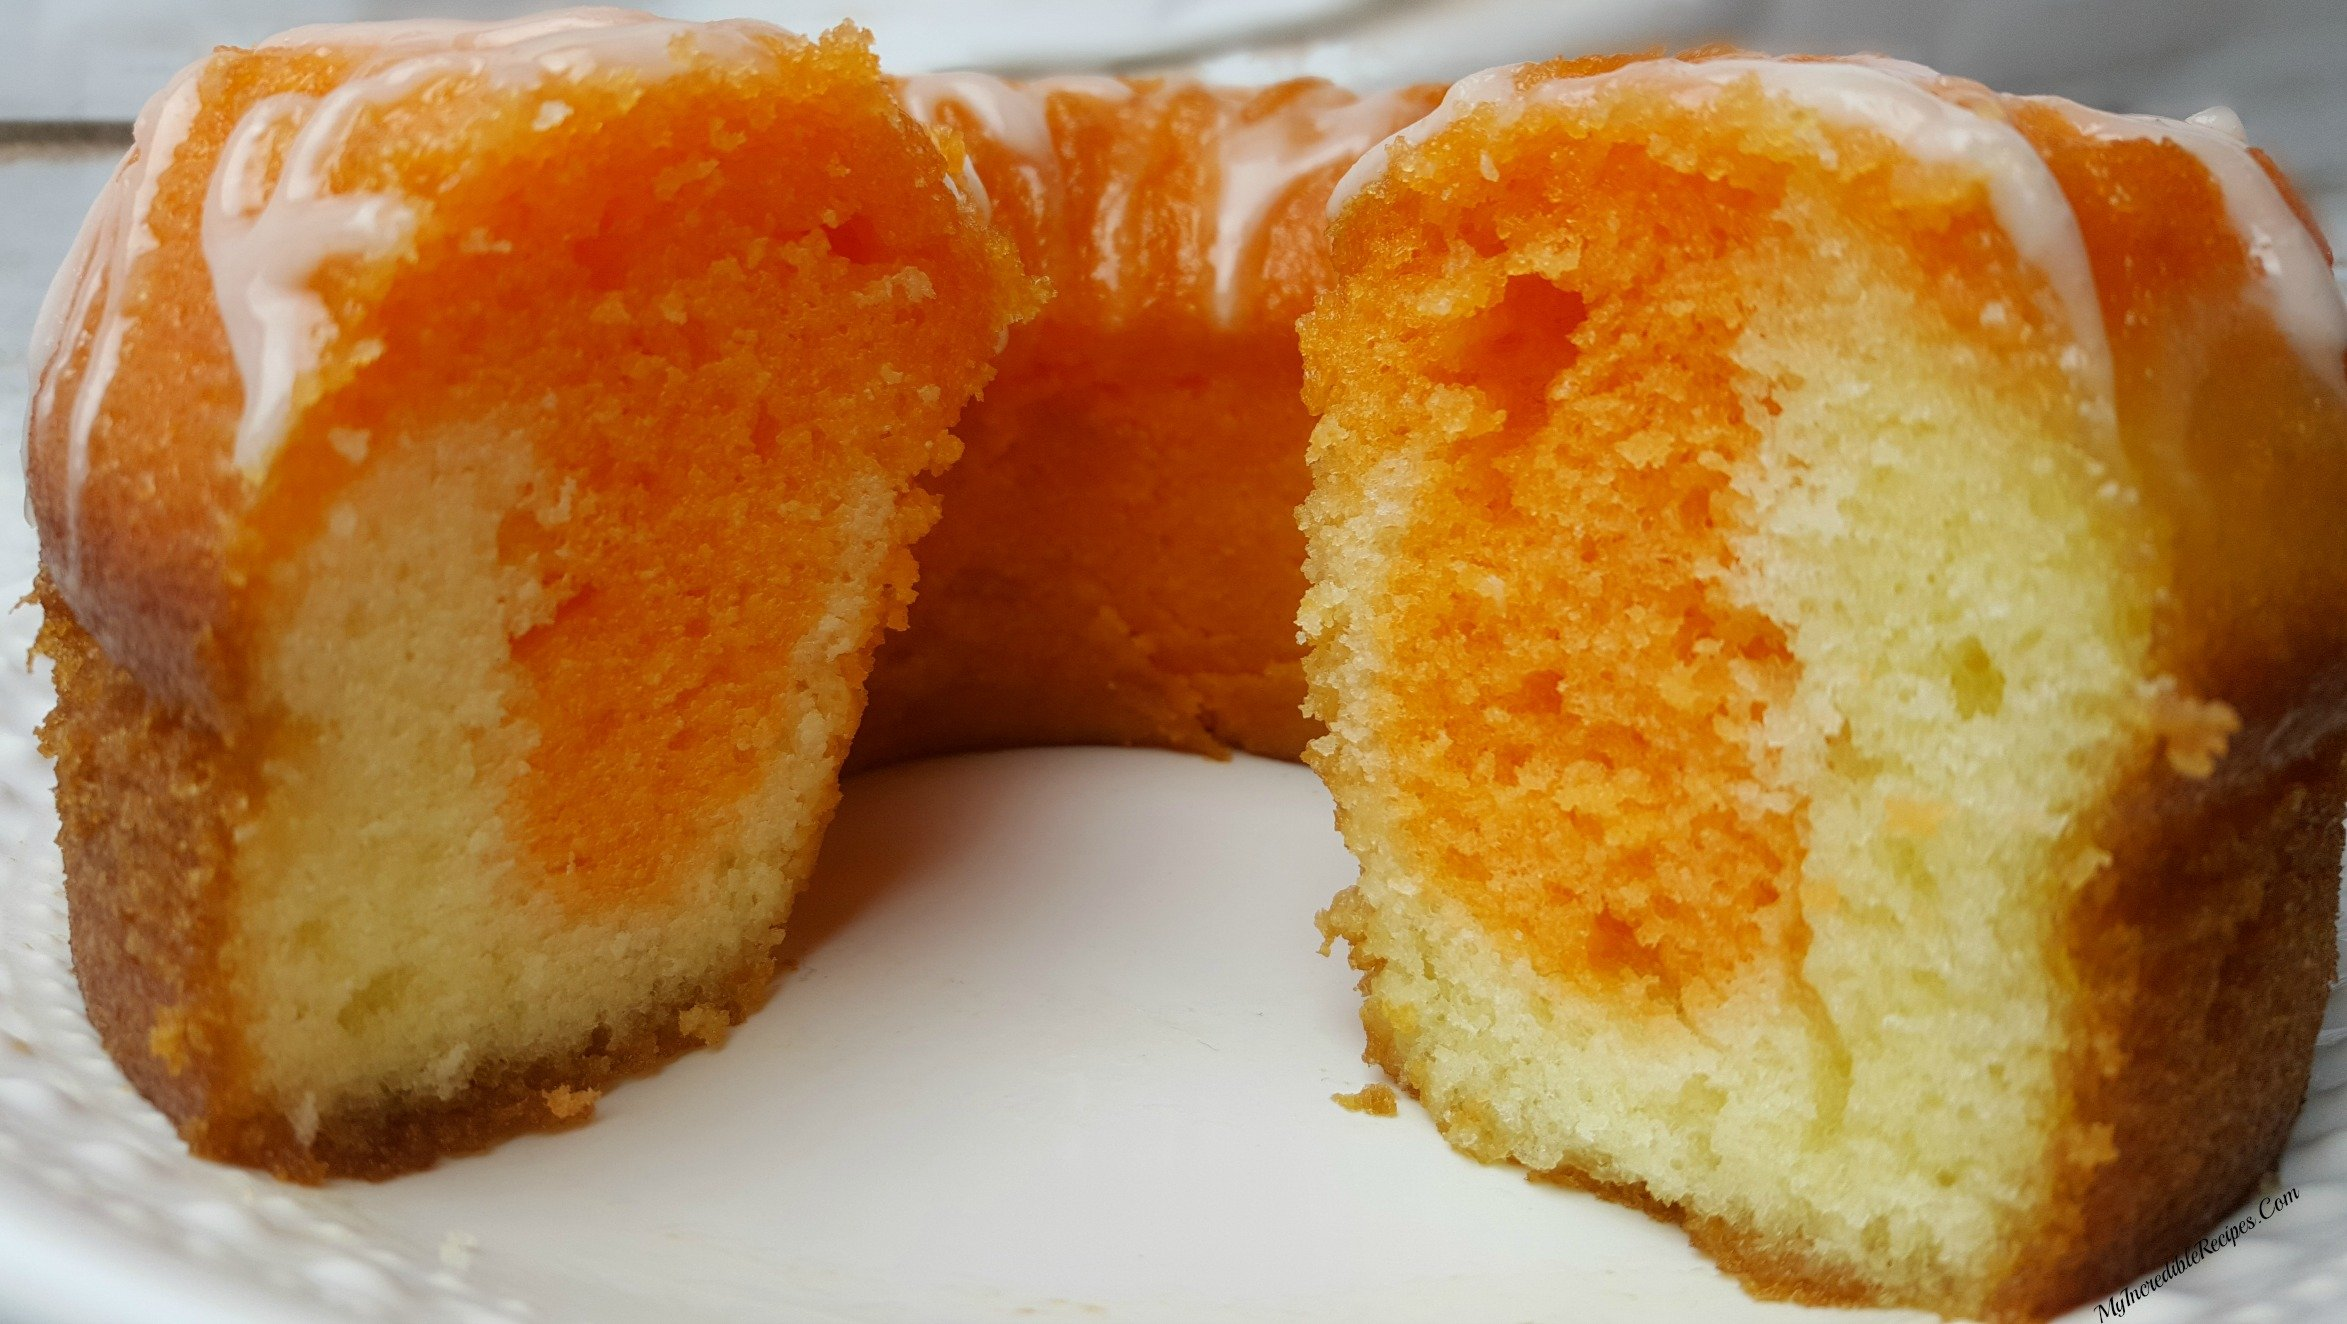 Creamsicle Cake With Orange Soda